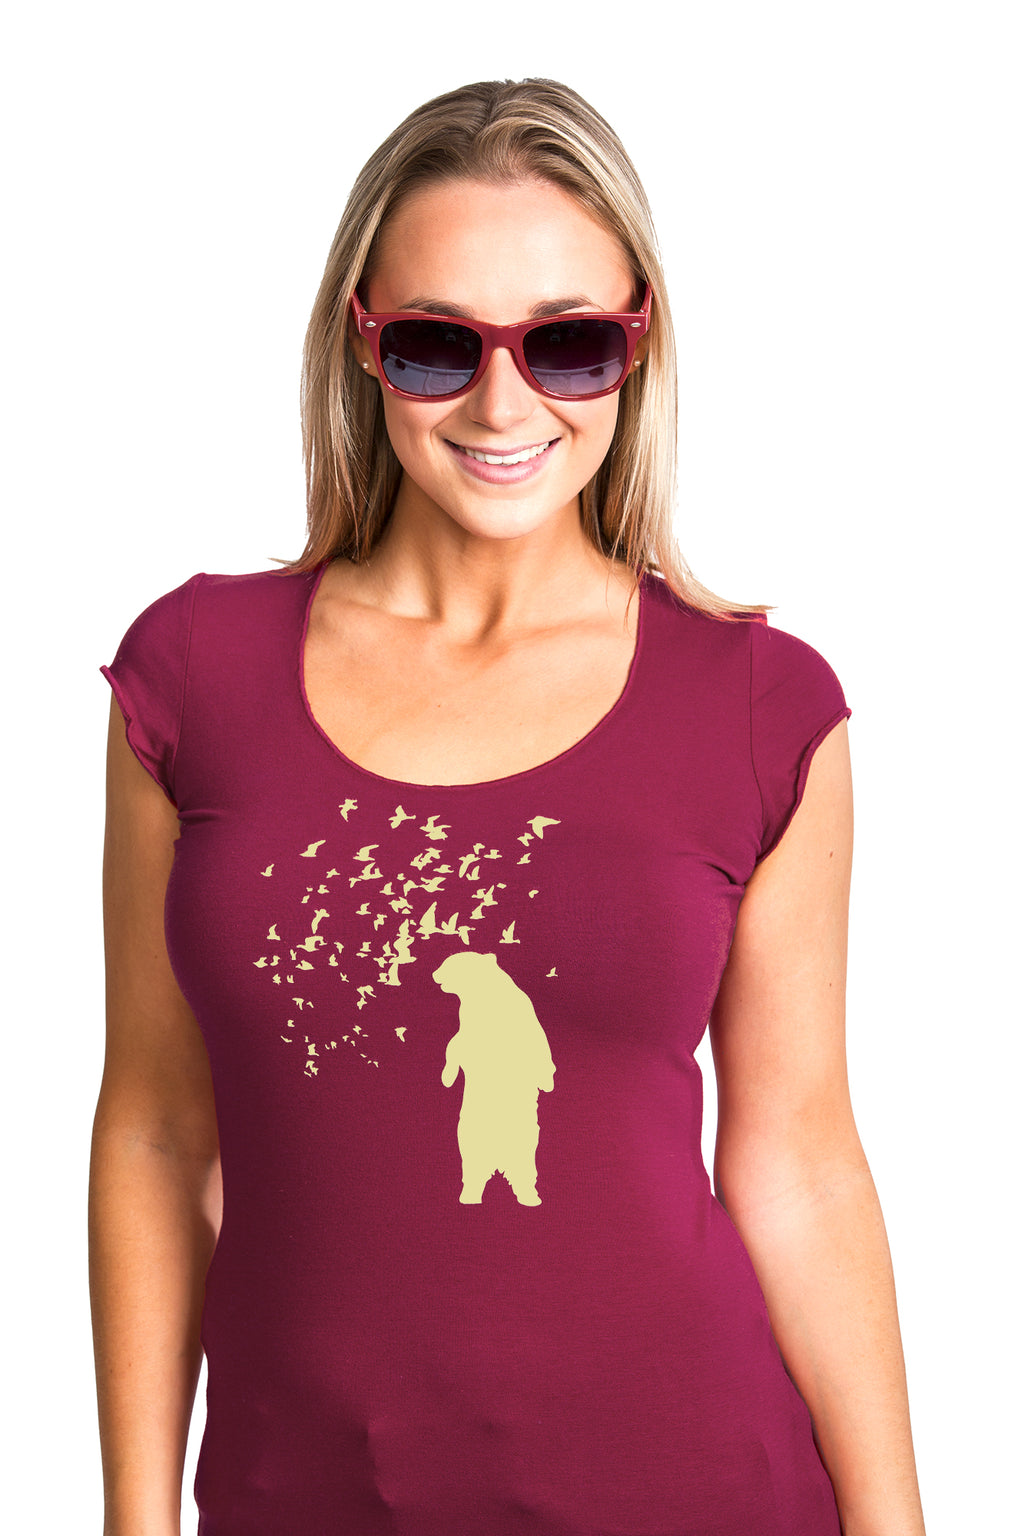 Bear T-shirt Woman Women Burgundy PLB Design Ours